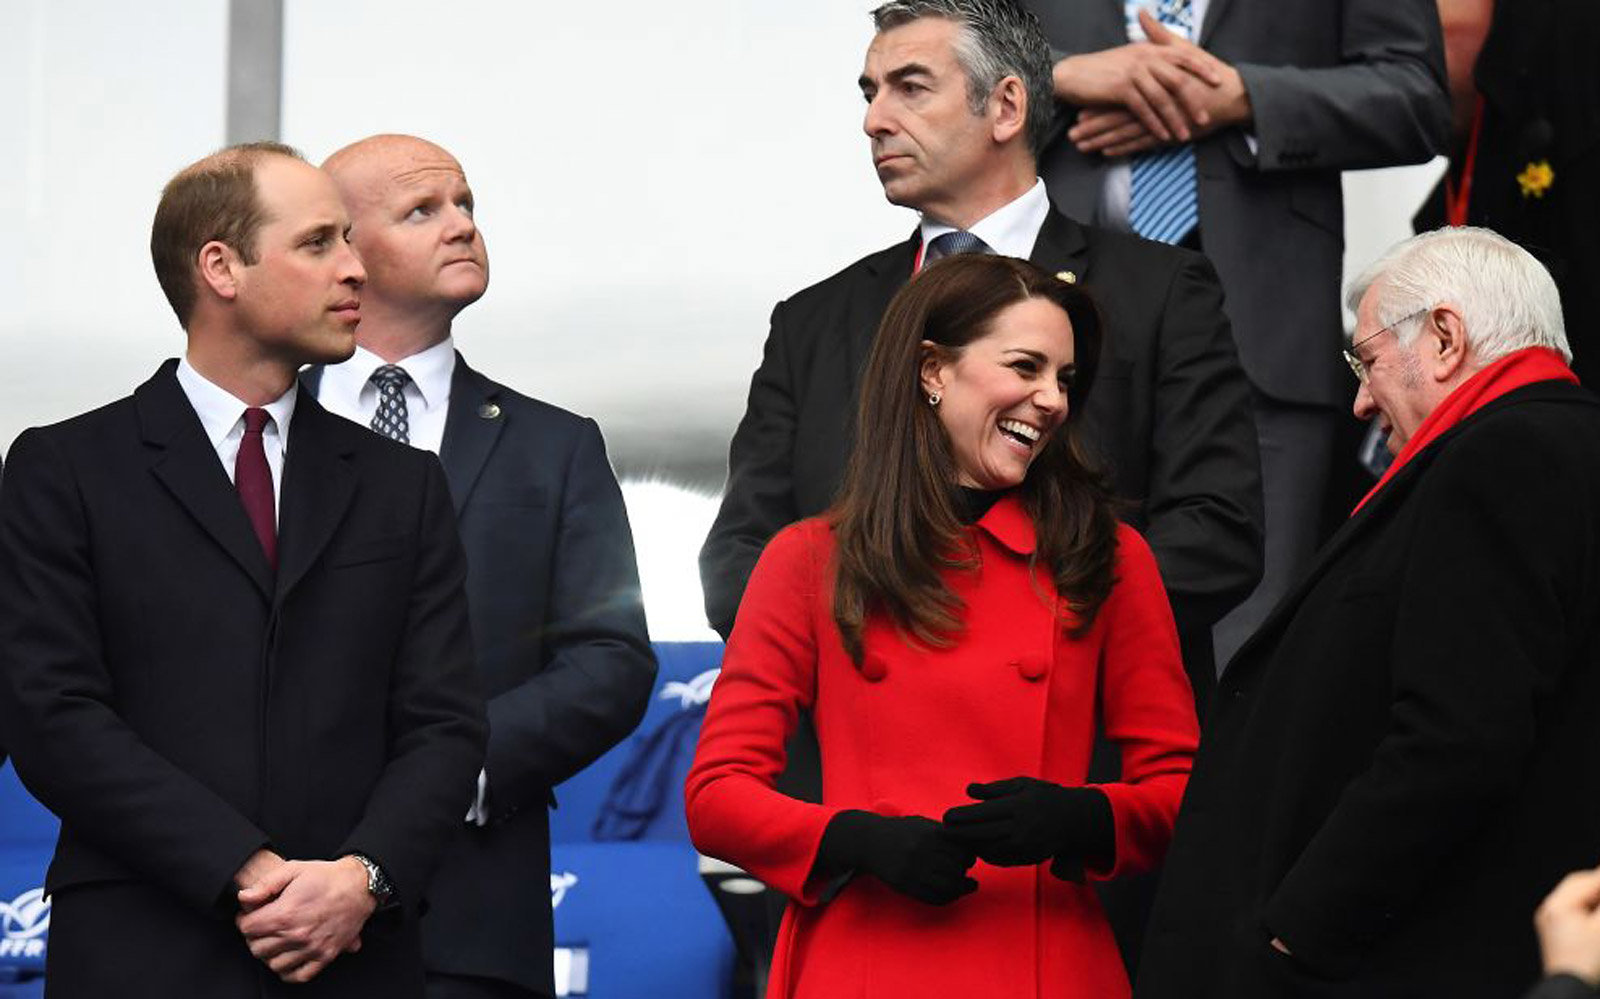 Britain's Prince William, Duke of Cambridge (L) and Britain's Catherine, Duchess of Cambridge are seen ahead of the Six Nations tournament Rugby Union match between France and Wales at the Stade de France in Saint-Denis, outside Paris, on March 18, 2017.